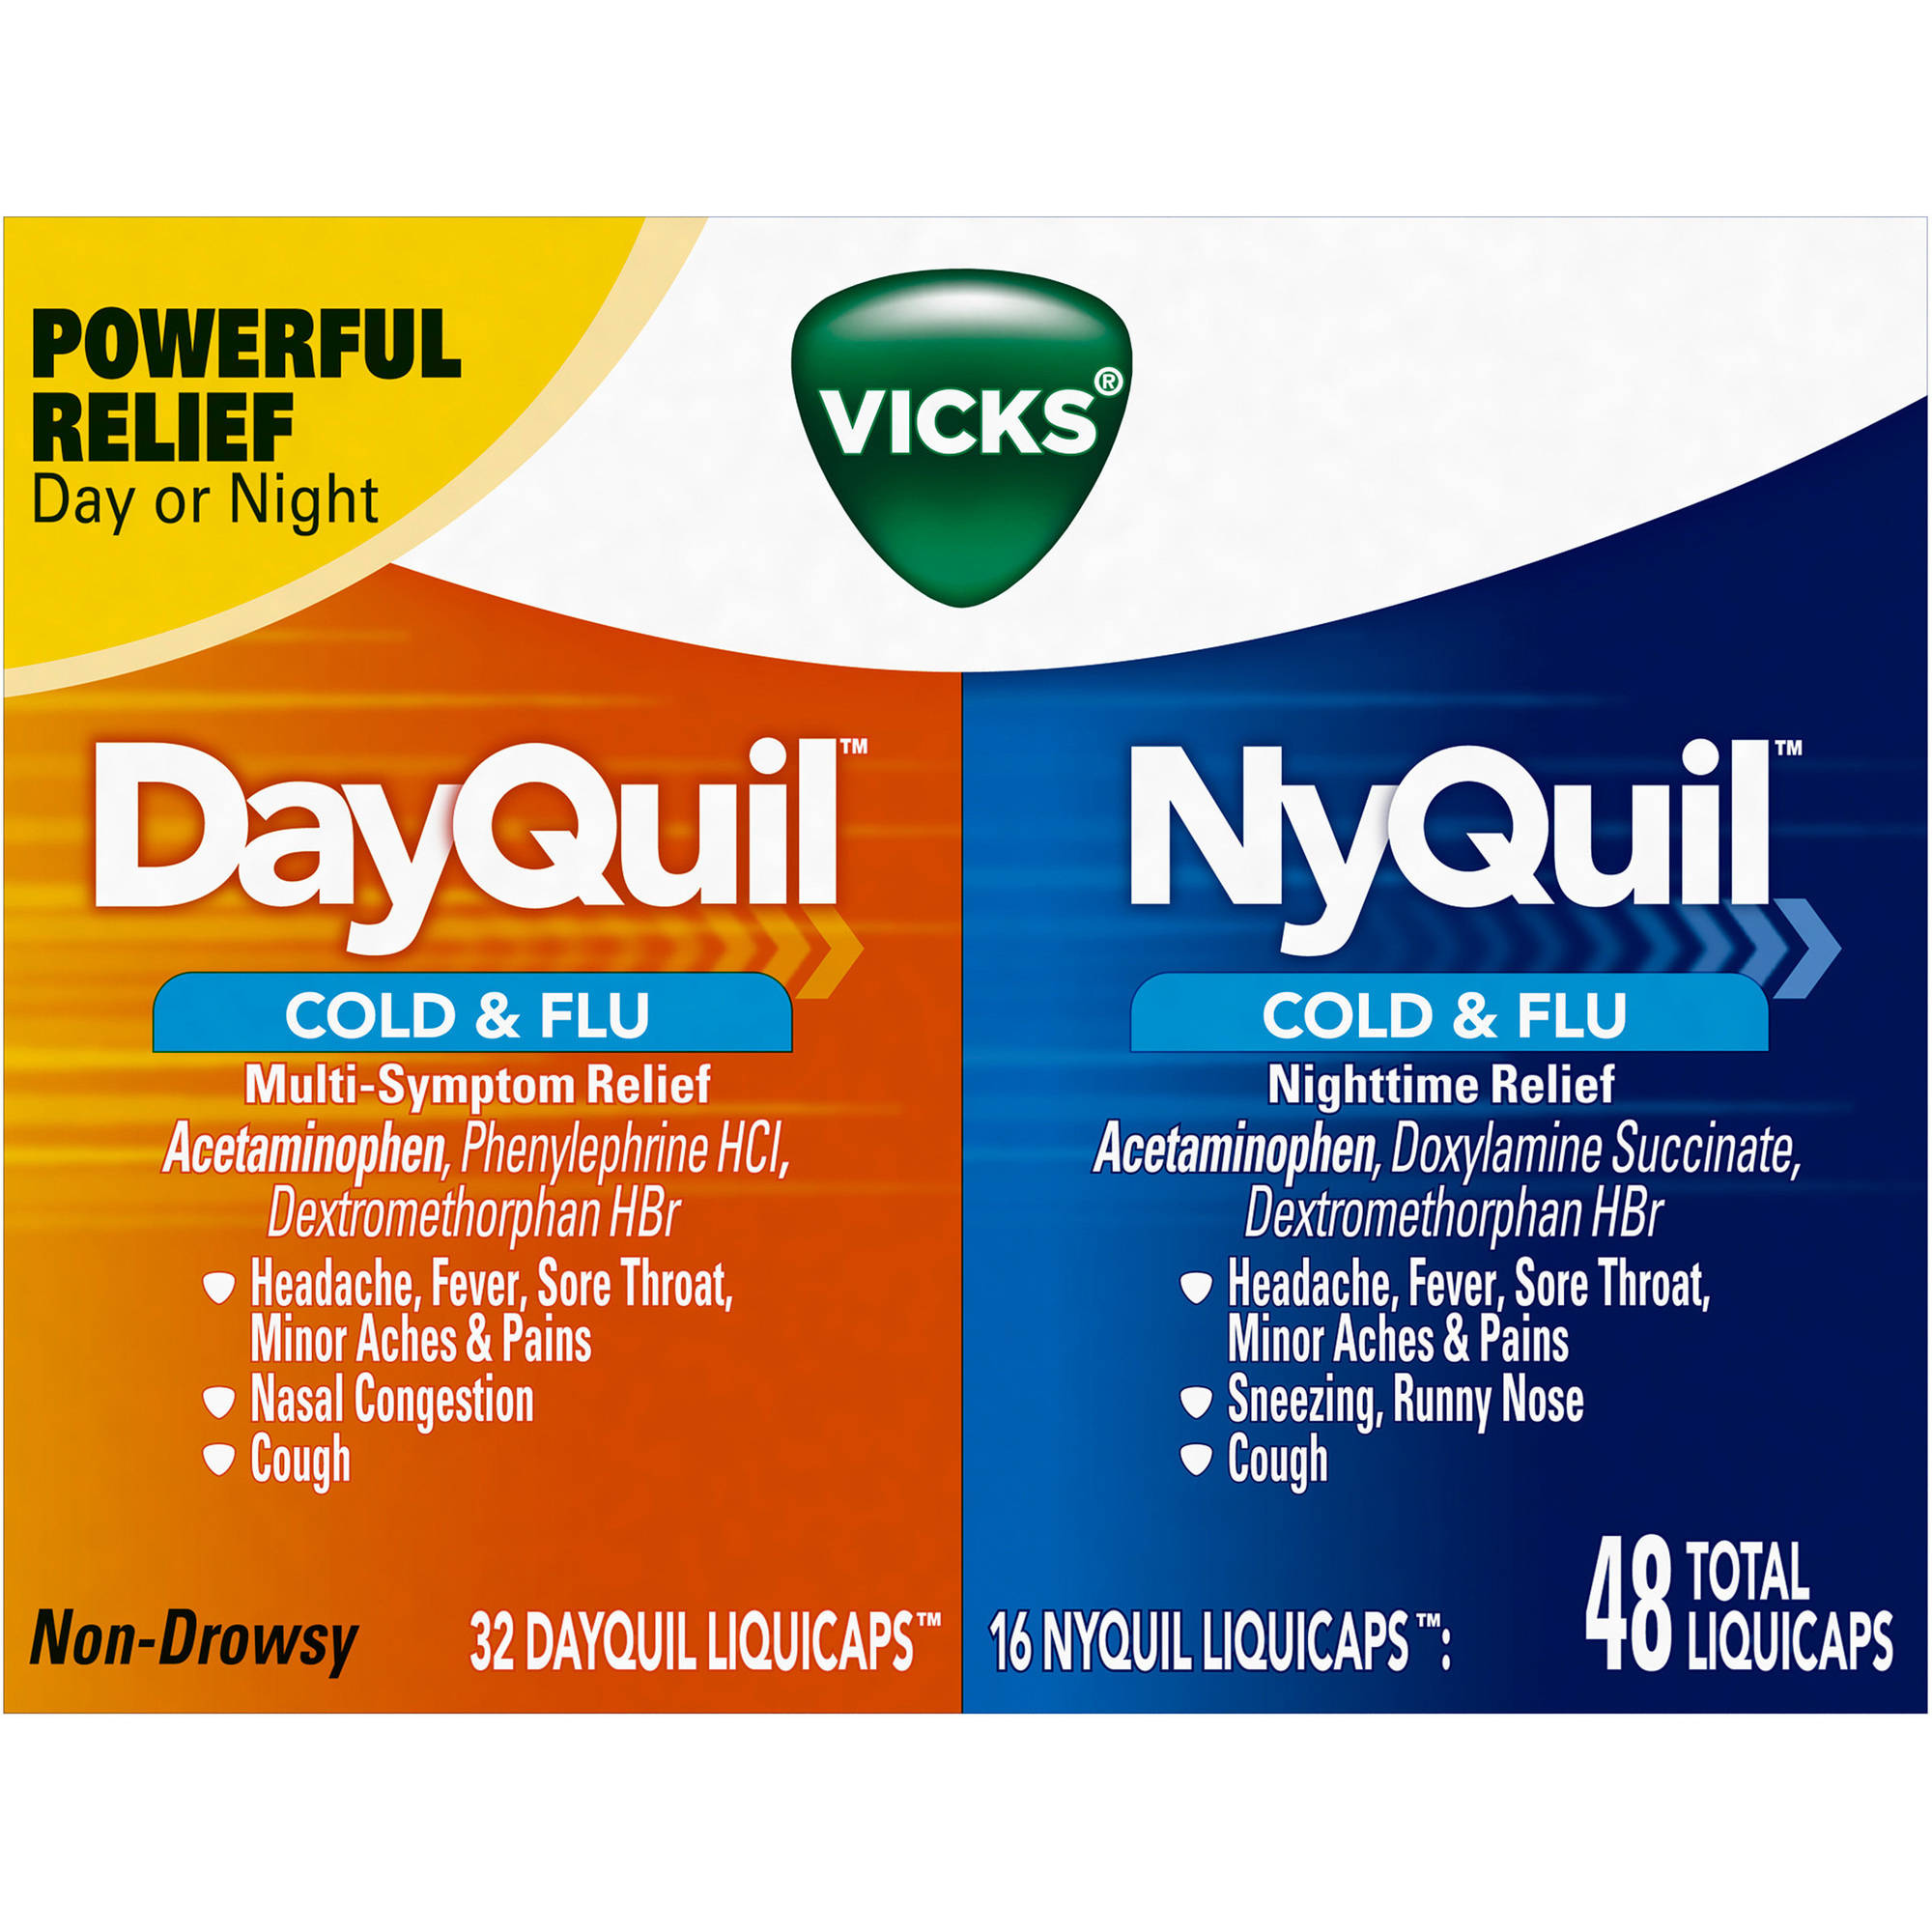 Vicks DayQuil & NyQuil Cold & Flu Relief LiquiCaps Co-Pack, 48 count